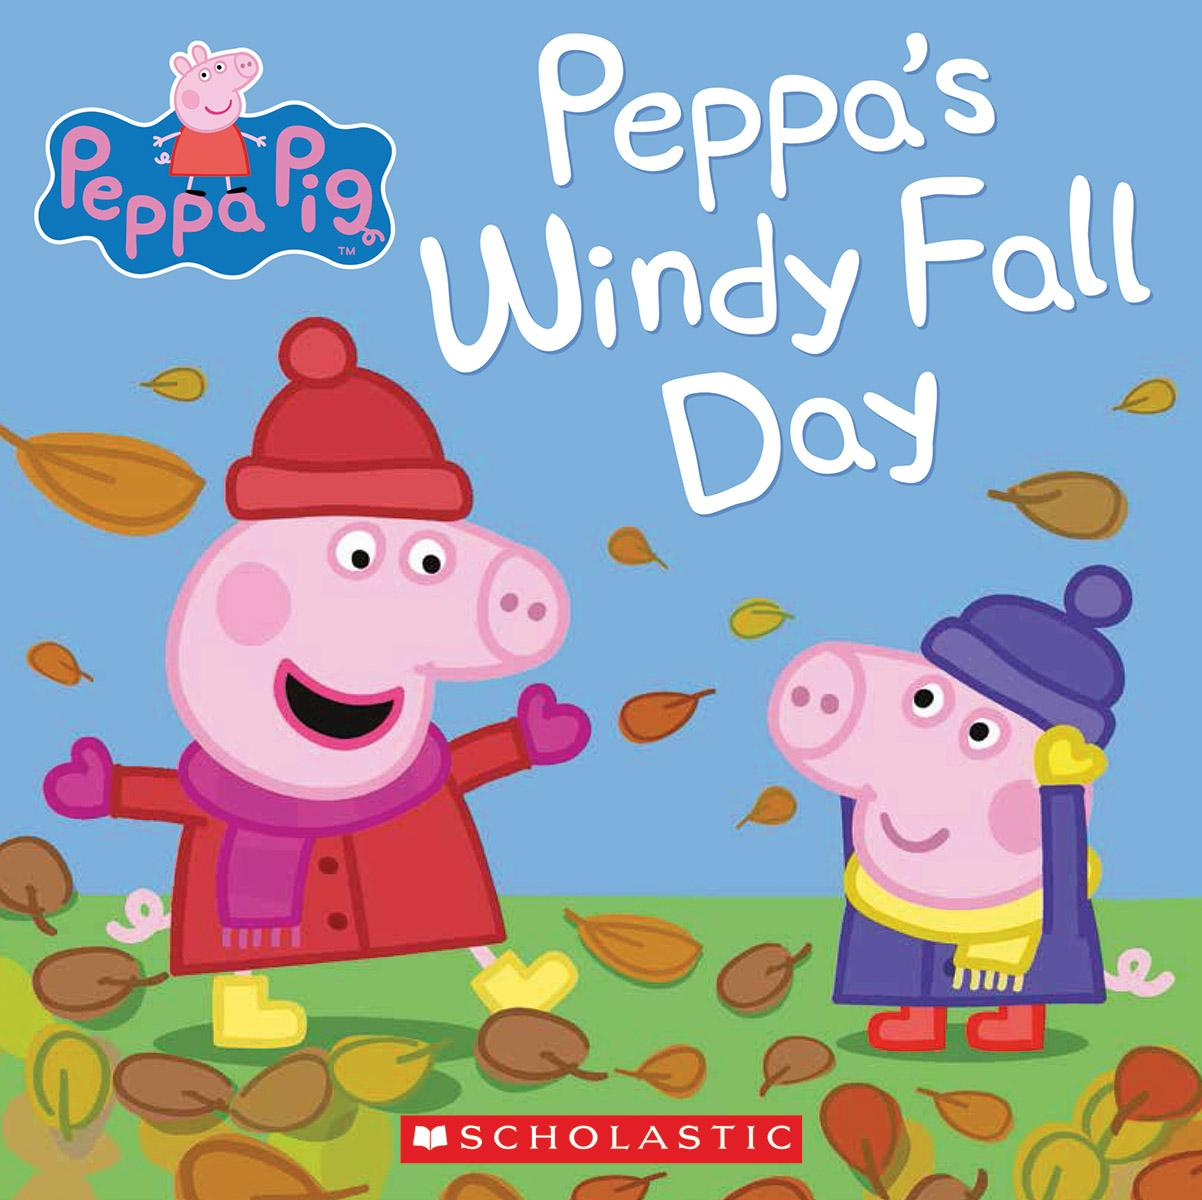 Peppa Pig: Peppa's Windy Fall Day (Other)